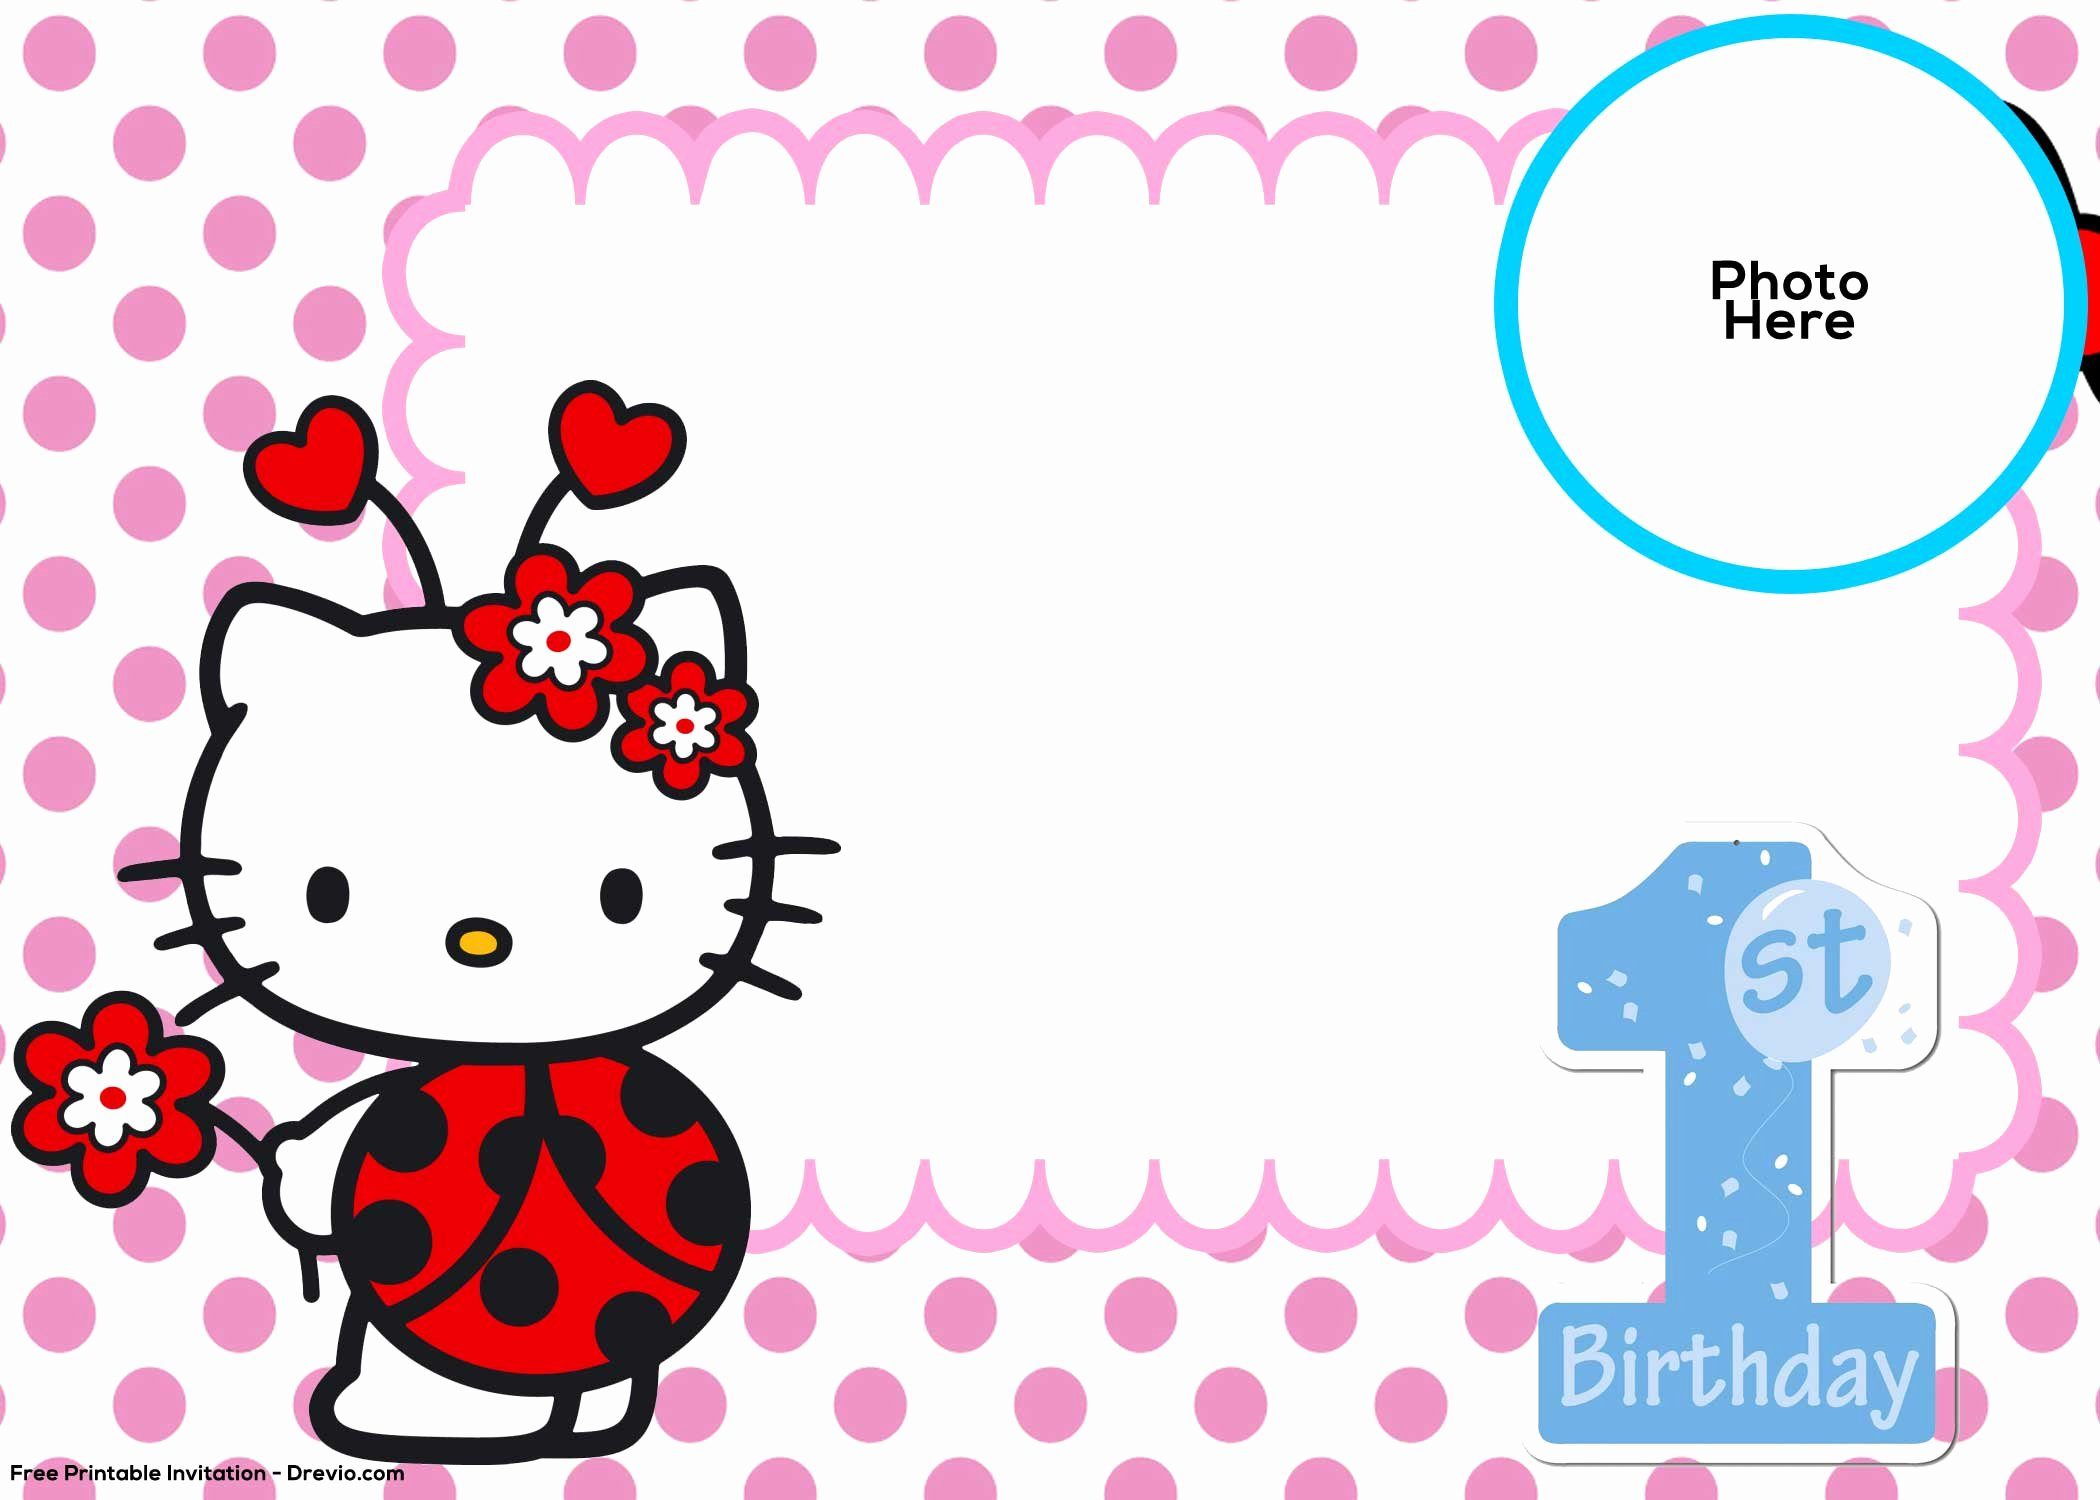 Hello Kitty Birthday Invites Inspirational Hello Kitty Birthday Invitation Cards Free